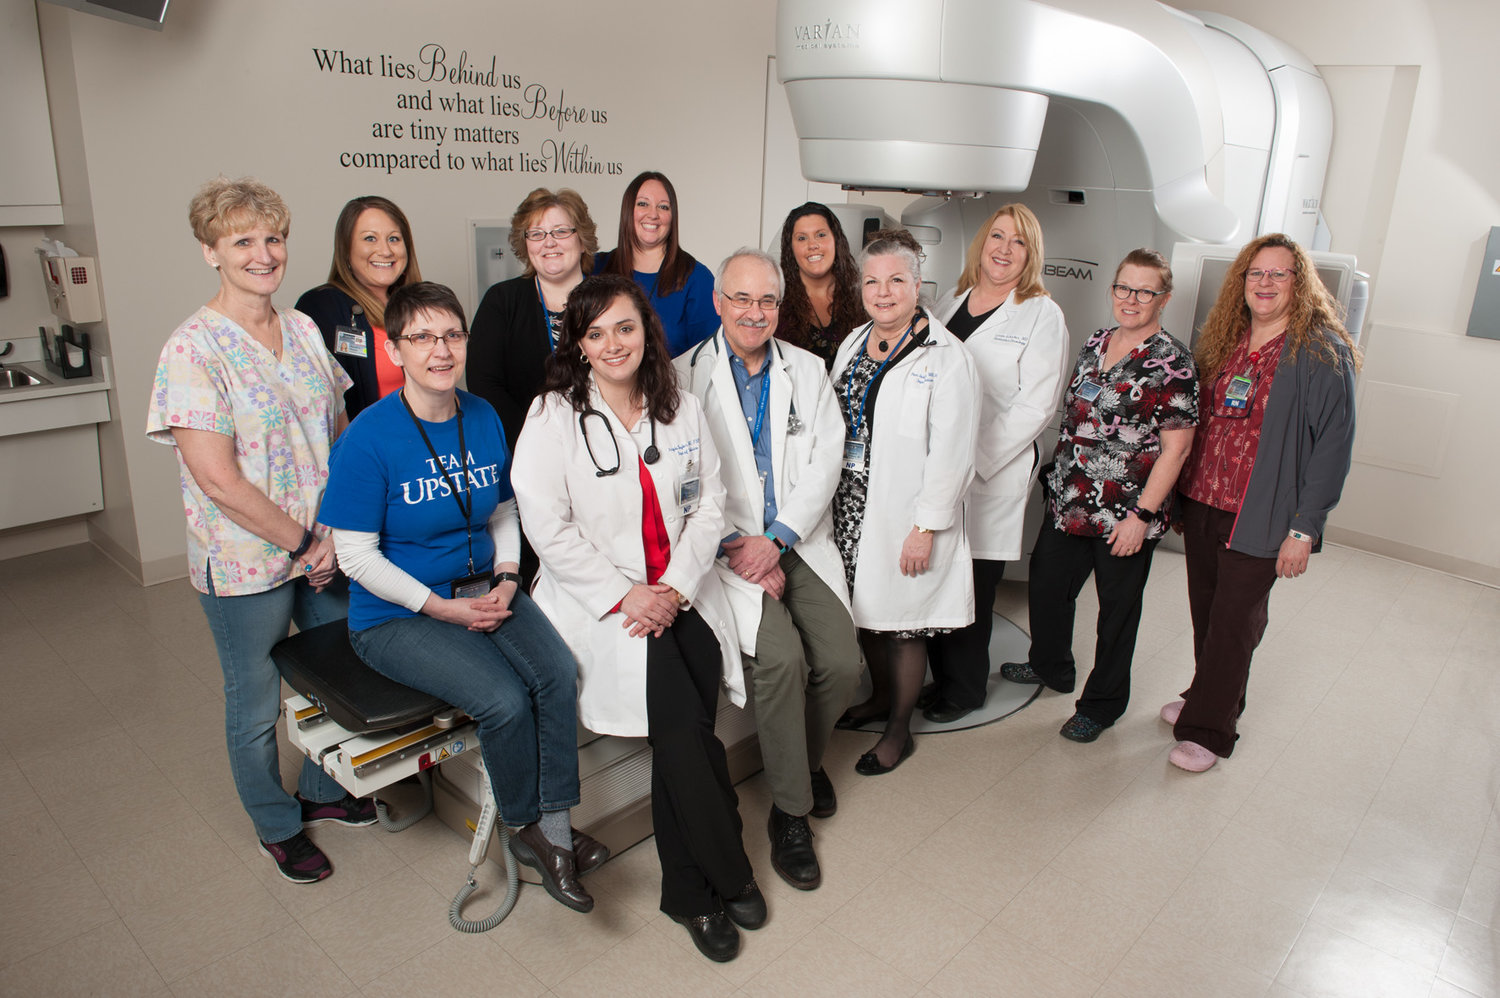 CELEBRATING — Staff of the Upstate Cancer Center at Oneida include, back row from left: Cindy Norman, Rachel Relyea, Kelly Moore, Lindsey Phillips and Jamie Palumbo. Front row, from left: Linda Mantz, Angela Taylor, Steven Graziano, Pam Salisbury, Linda Schicker, Julie Matthews and Amy Jennings.